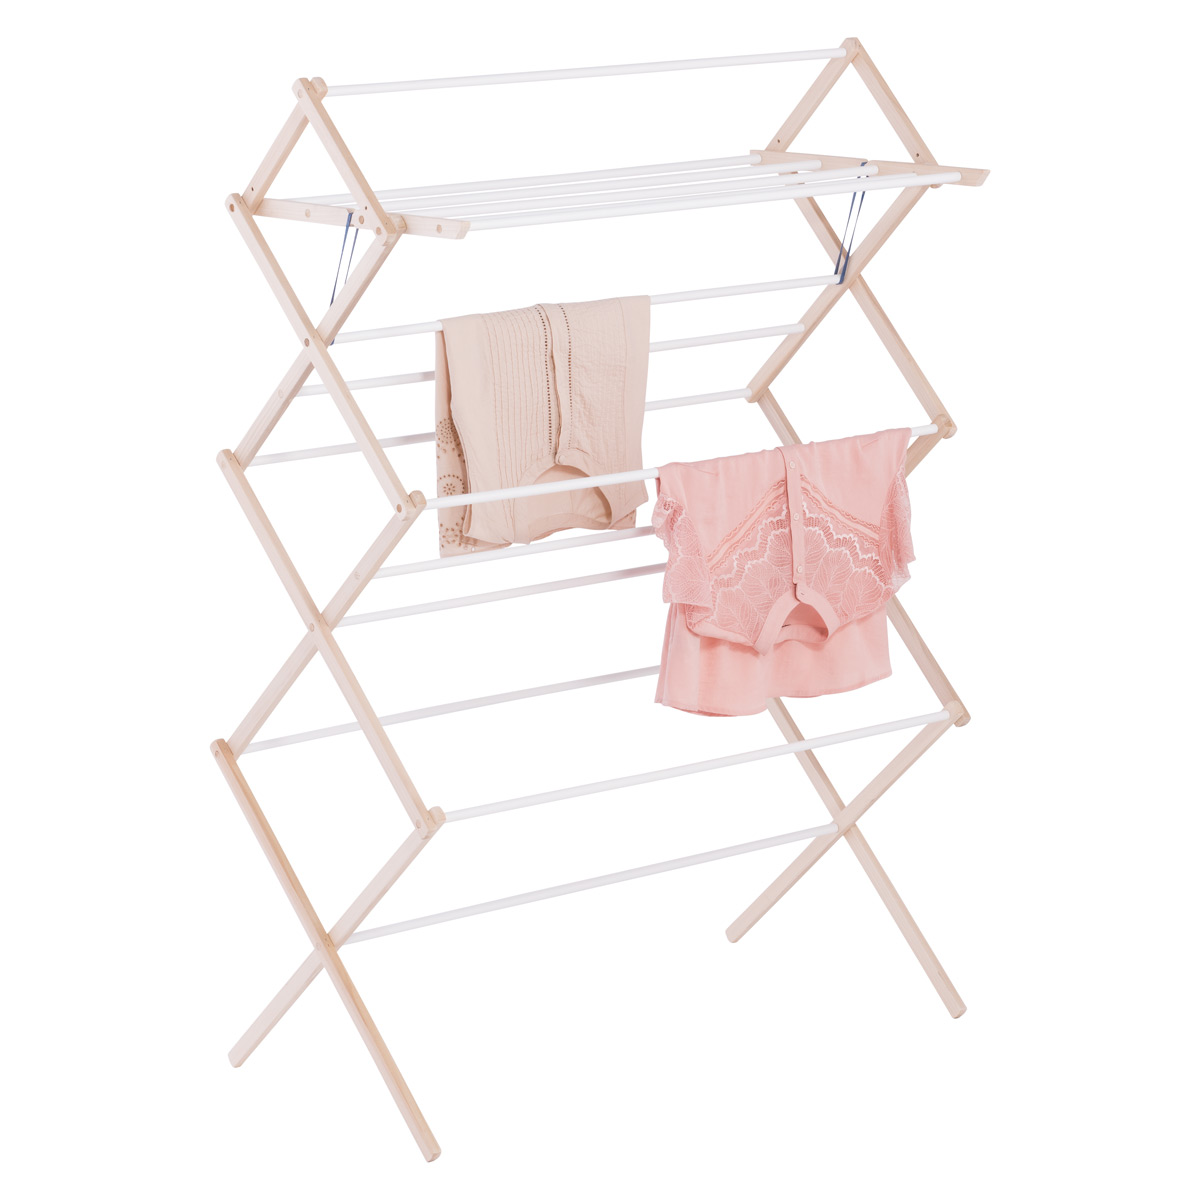 with clothes beadboard uk rack from to vintage drying de furniture modern style decoration wall laundry amazing hanging nice rail mounted design white wooden